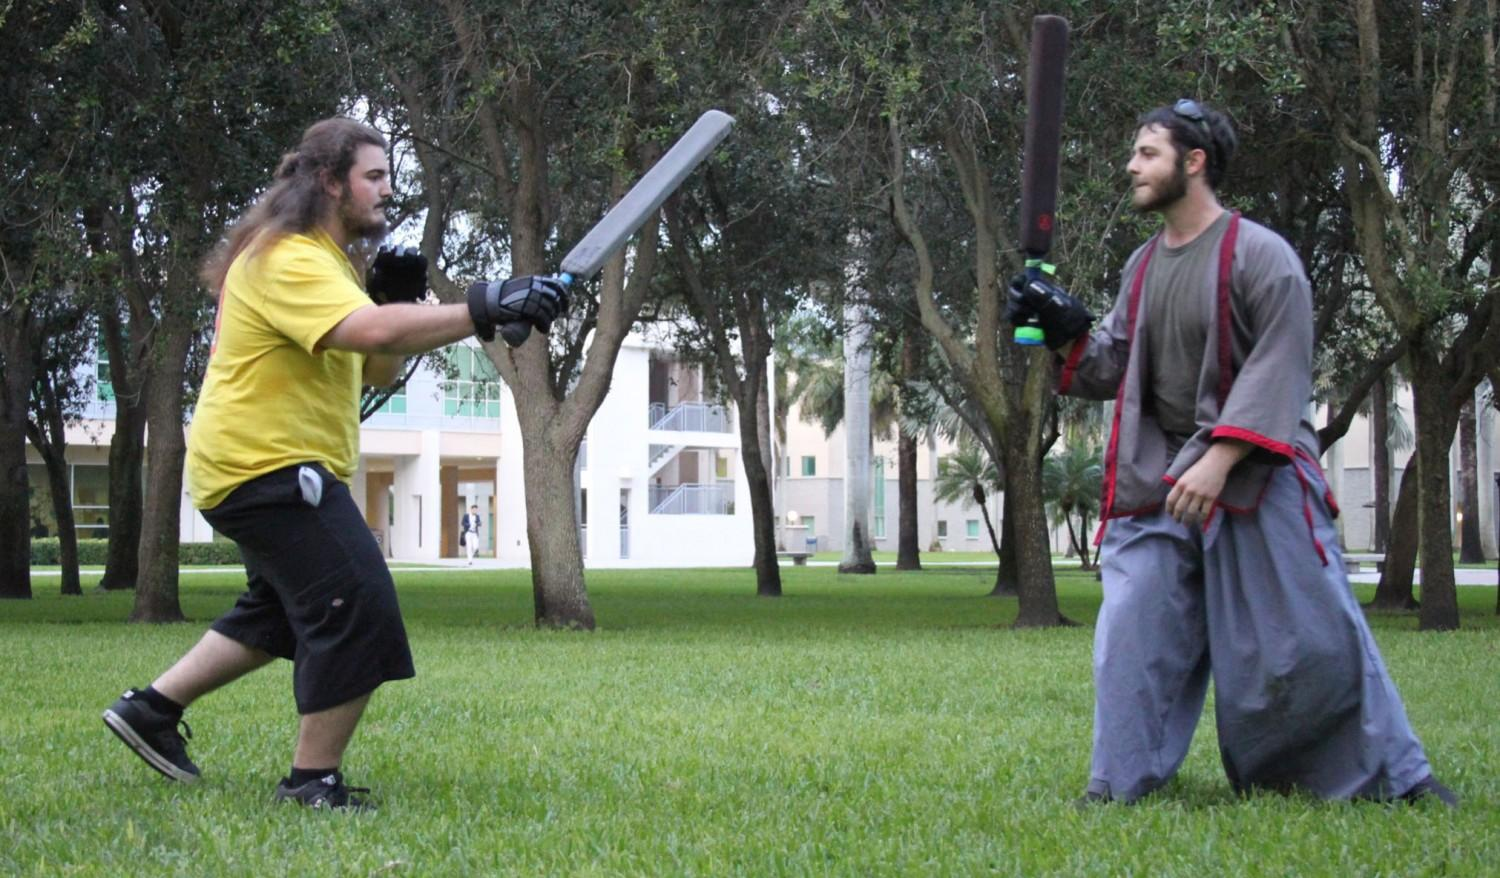 Legal combat on campus with daggers and swords – UNIVERSITY